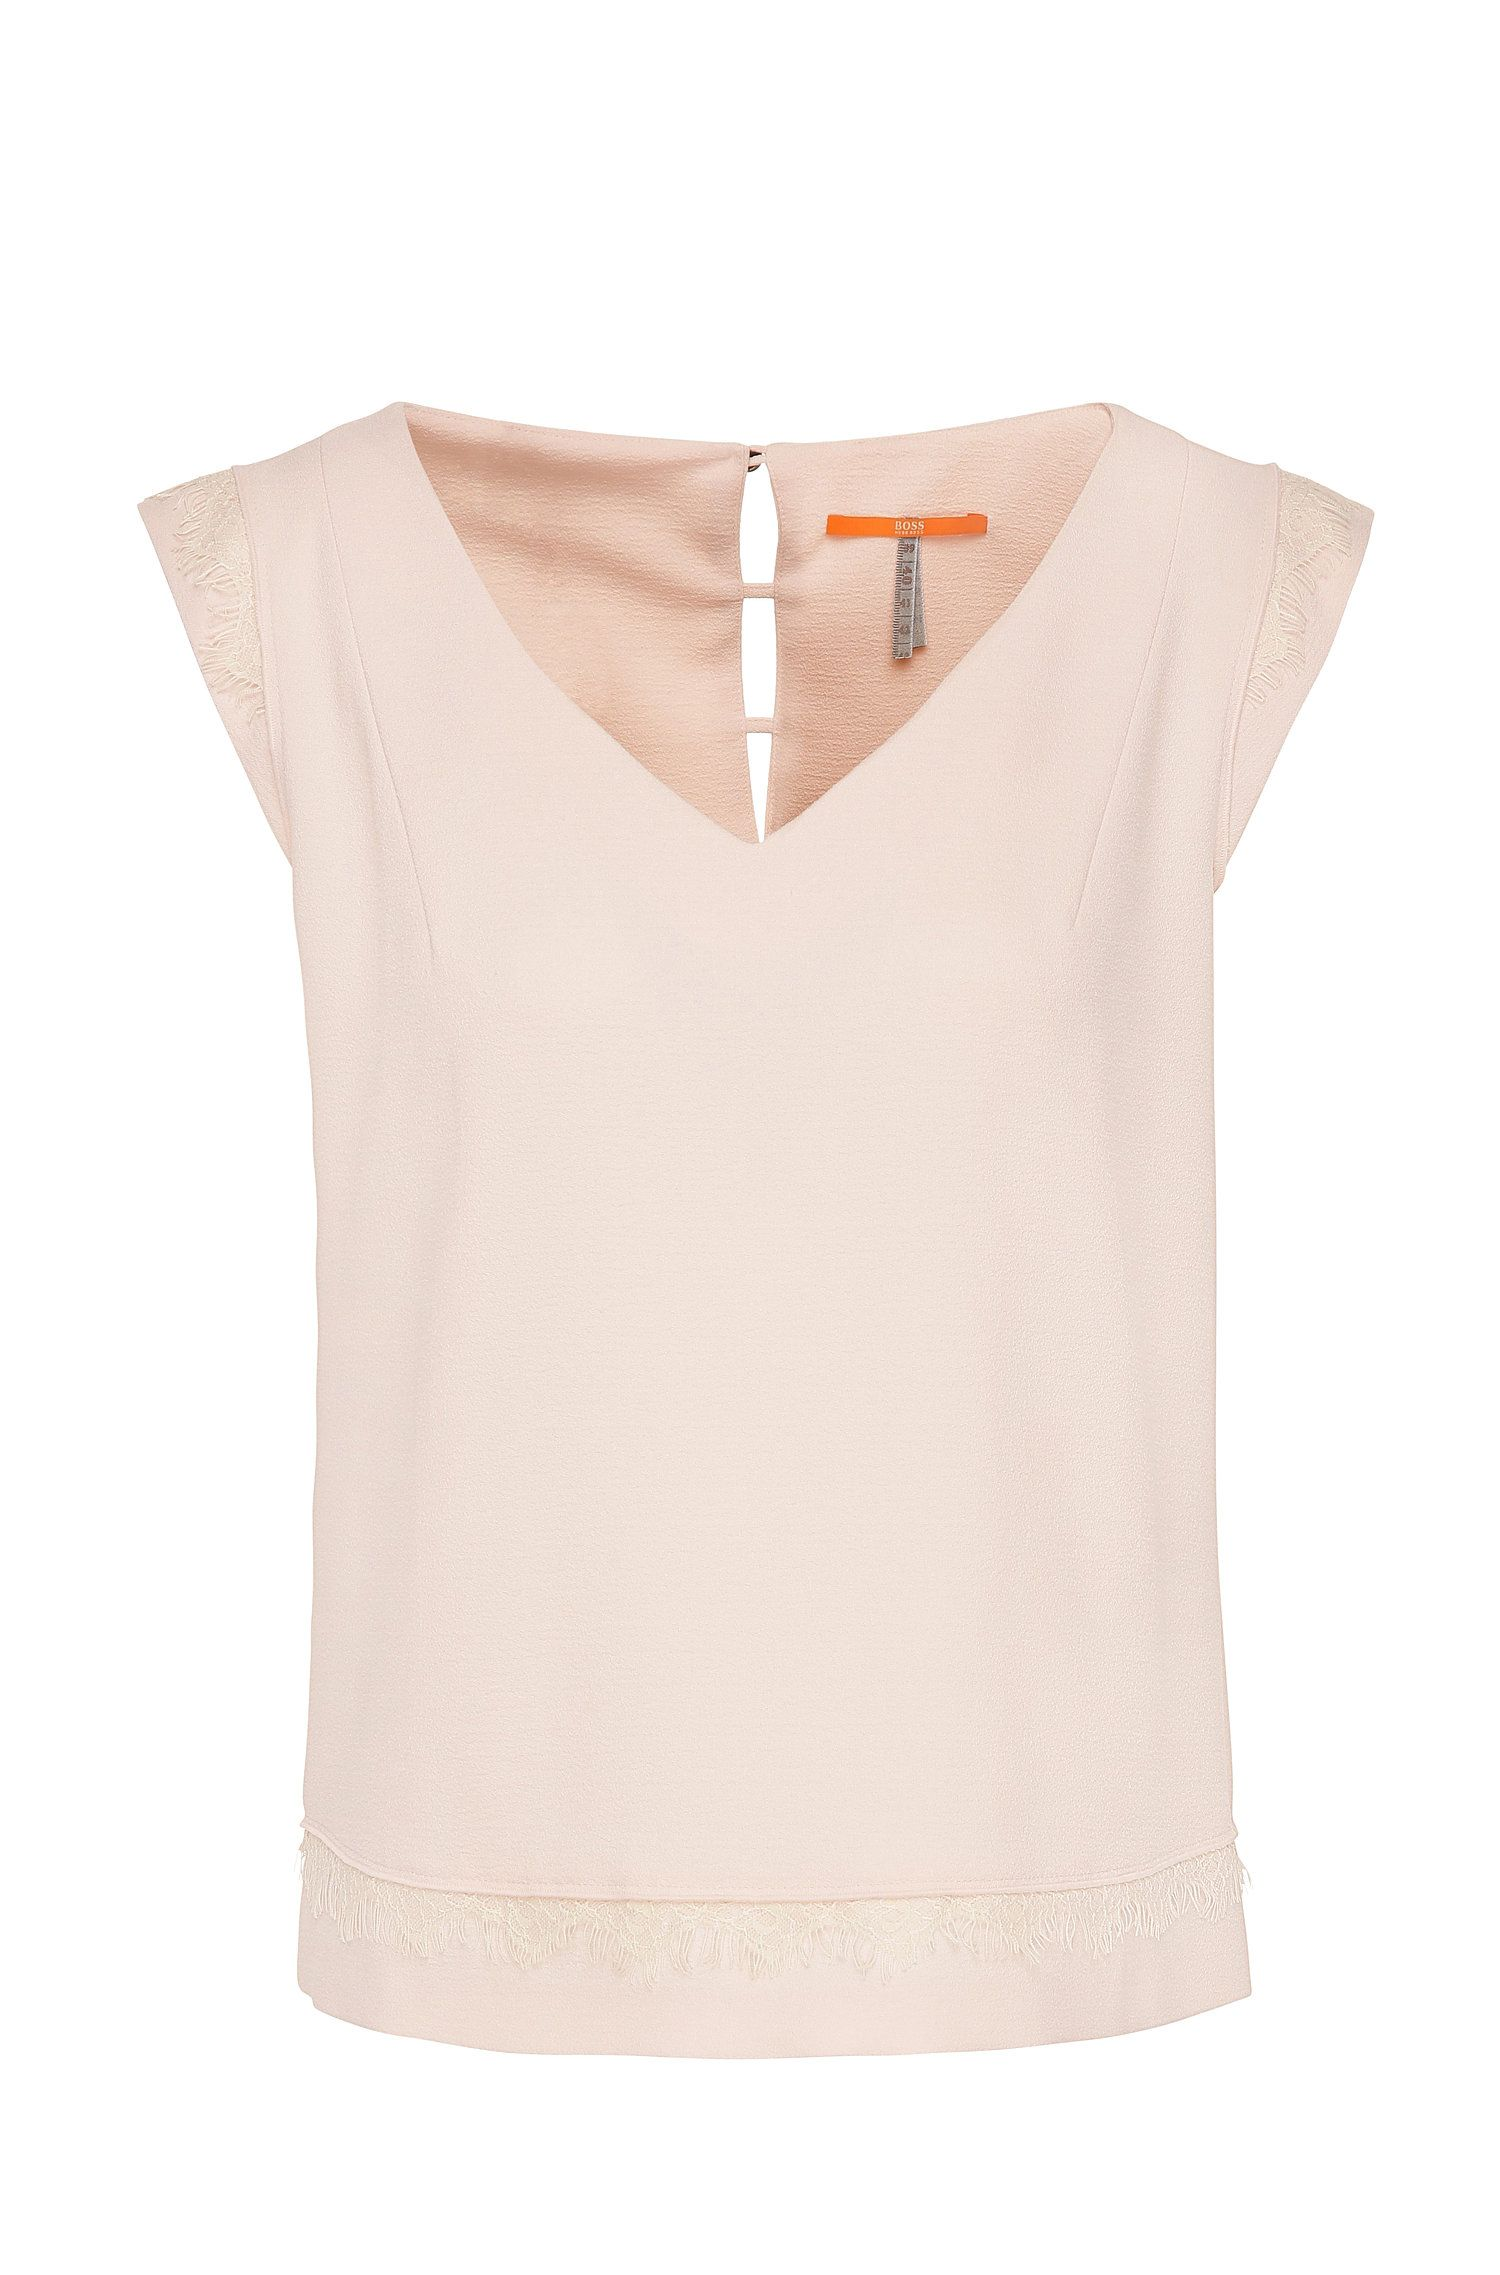 Regular-fit top in stretchy material blend: 'Katapy'